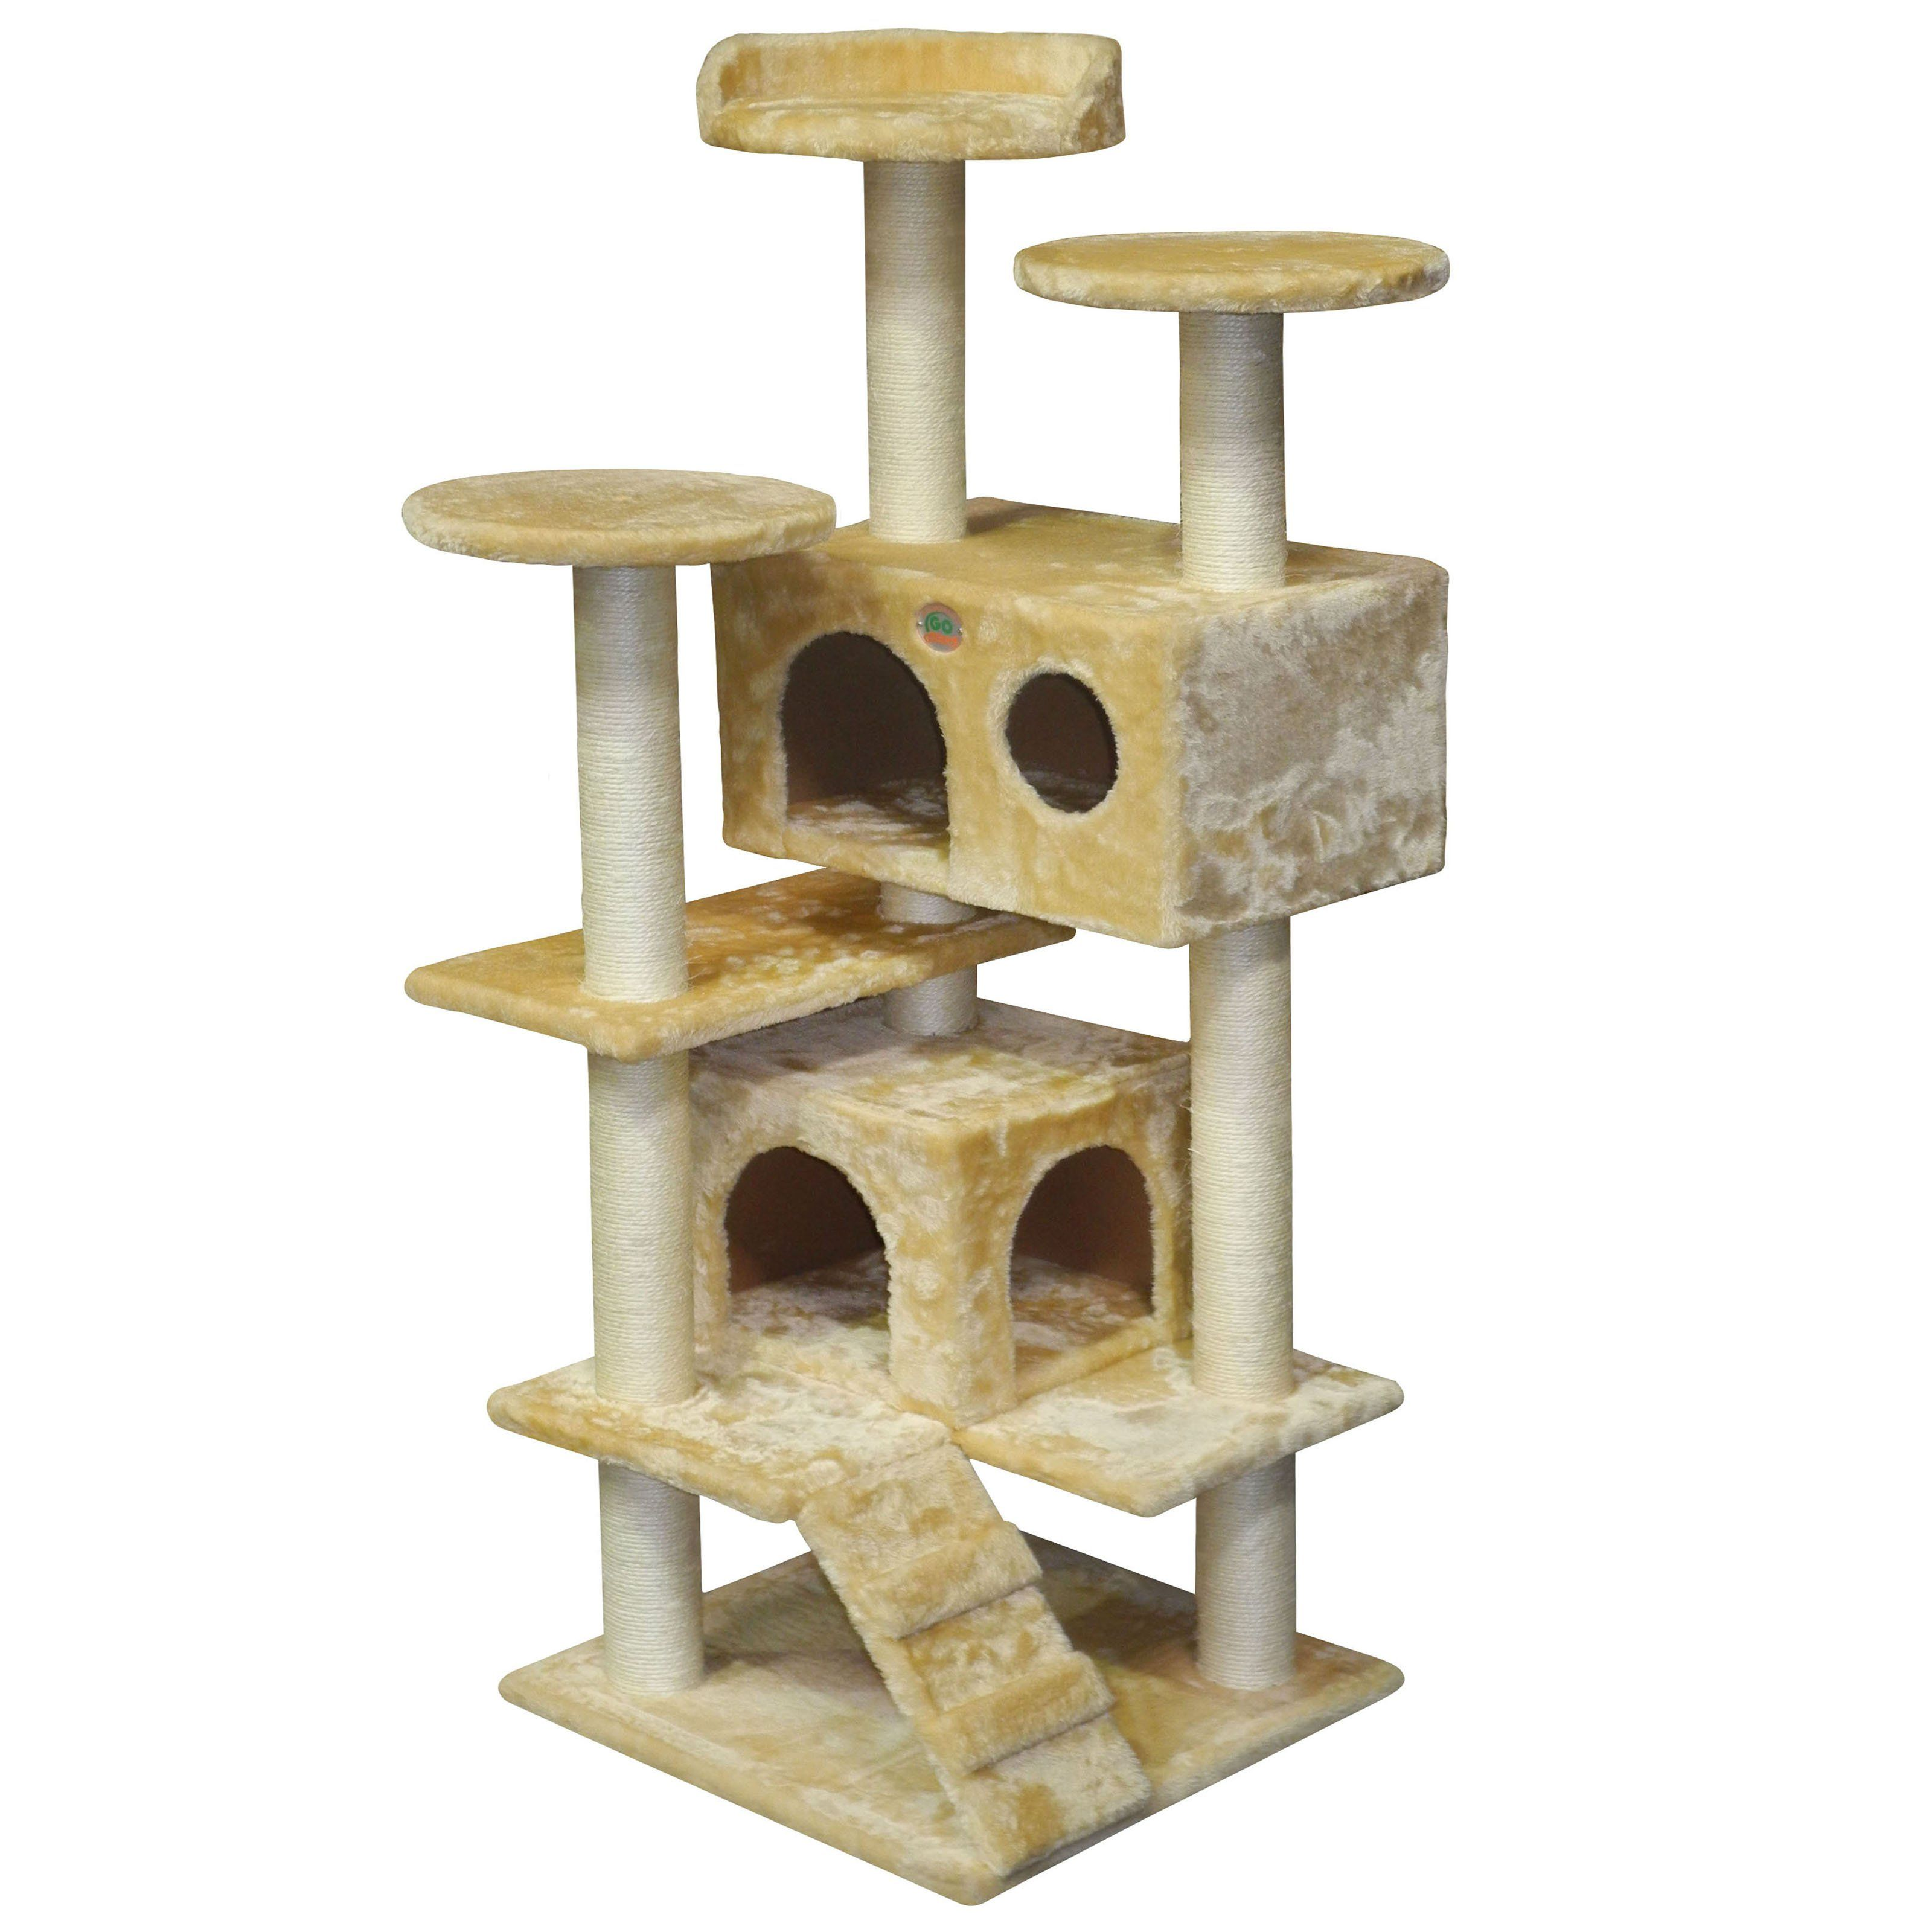 go pet club  in cat tree condo scratcher post pet bed furniture  - go pet club  in cat tree condo scratcher post pet bed furniture  from